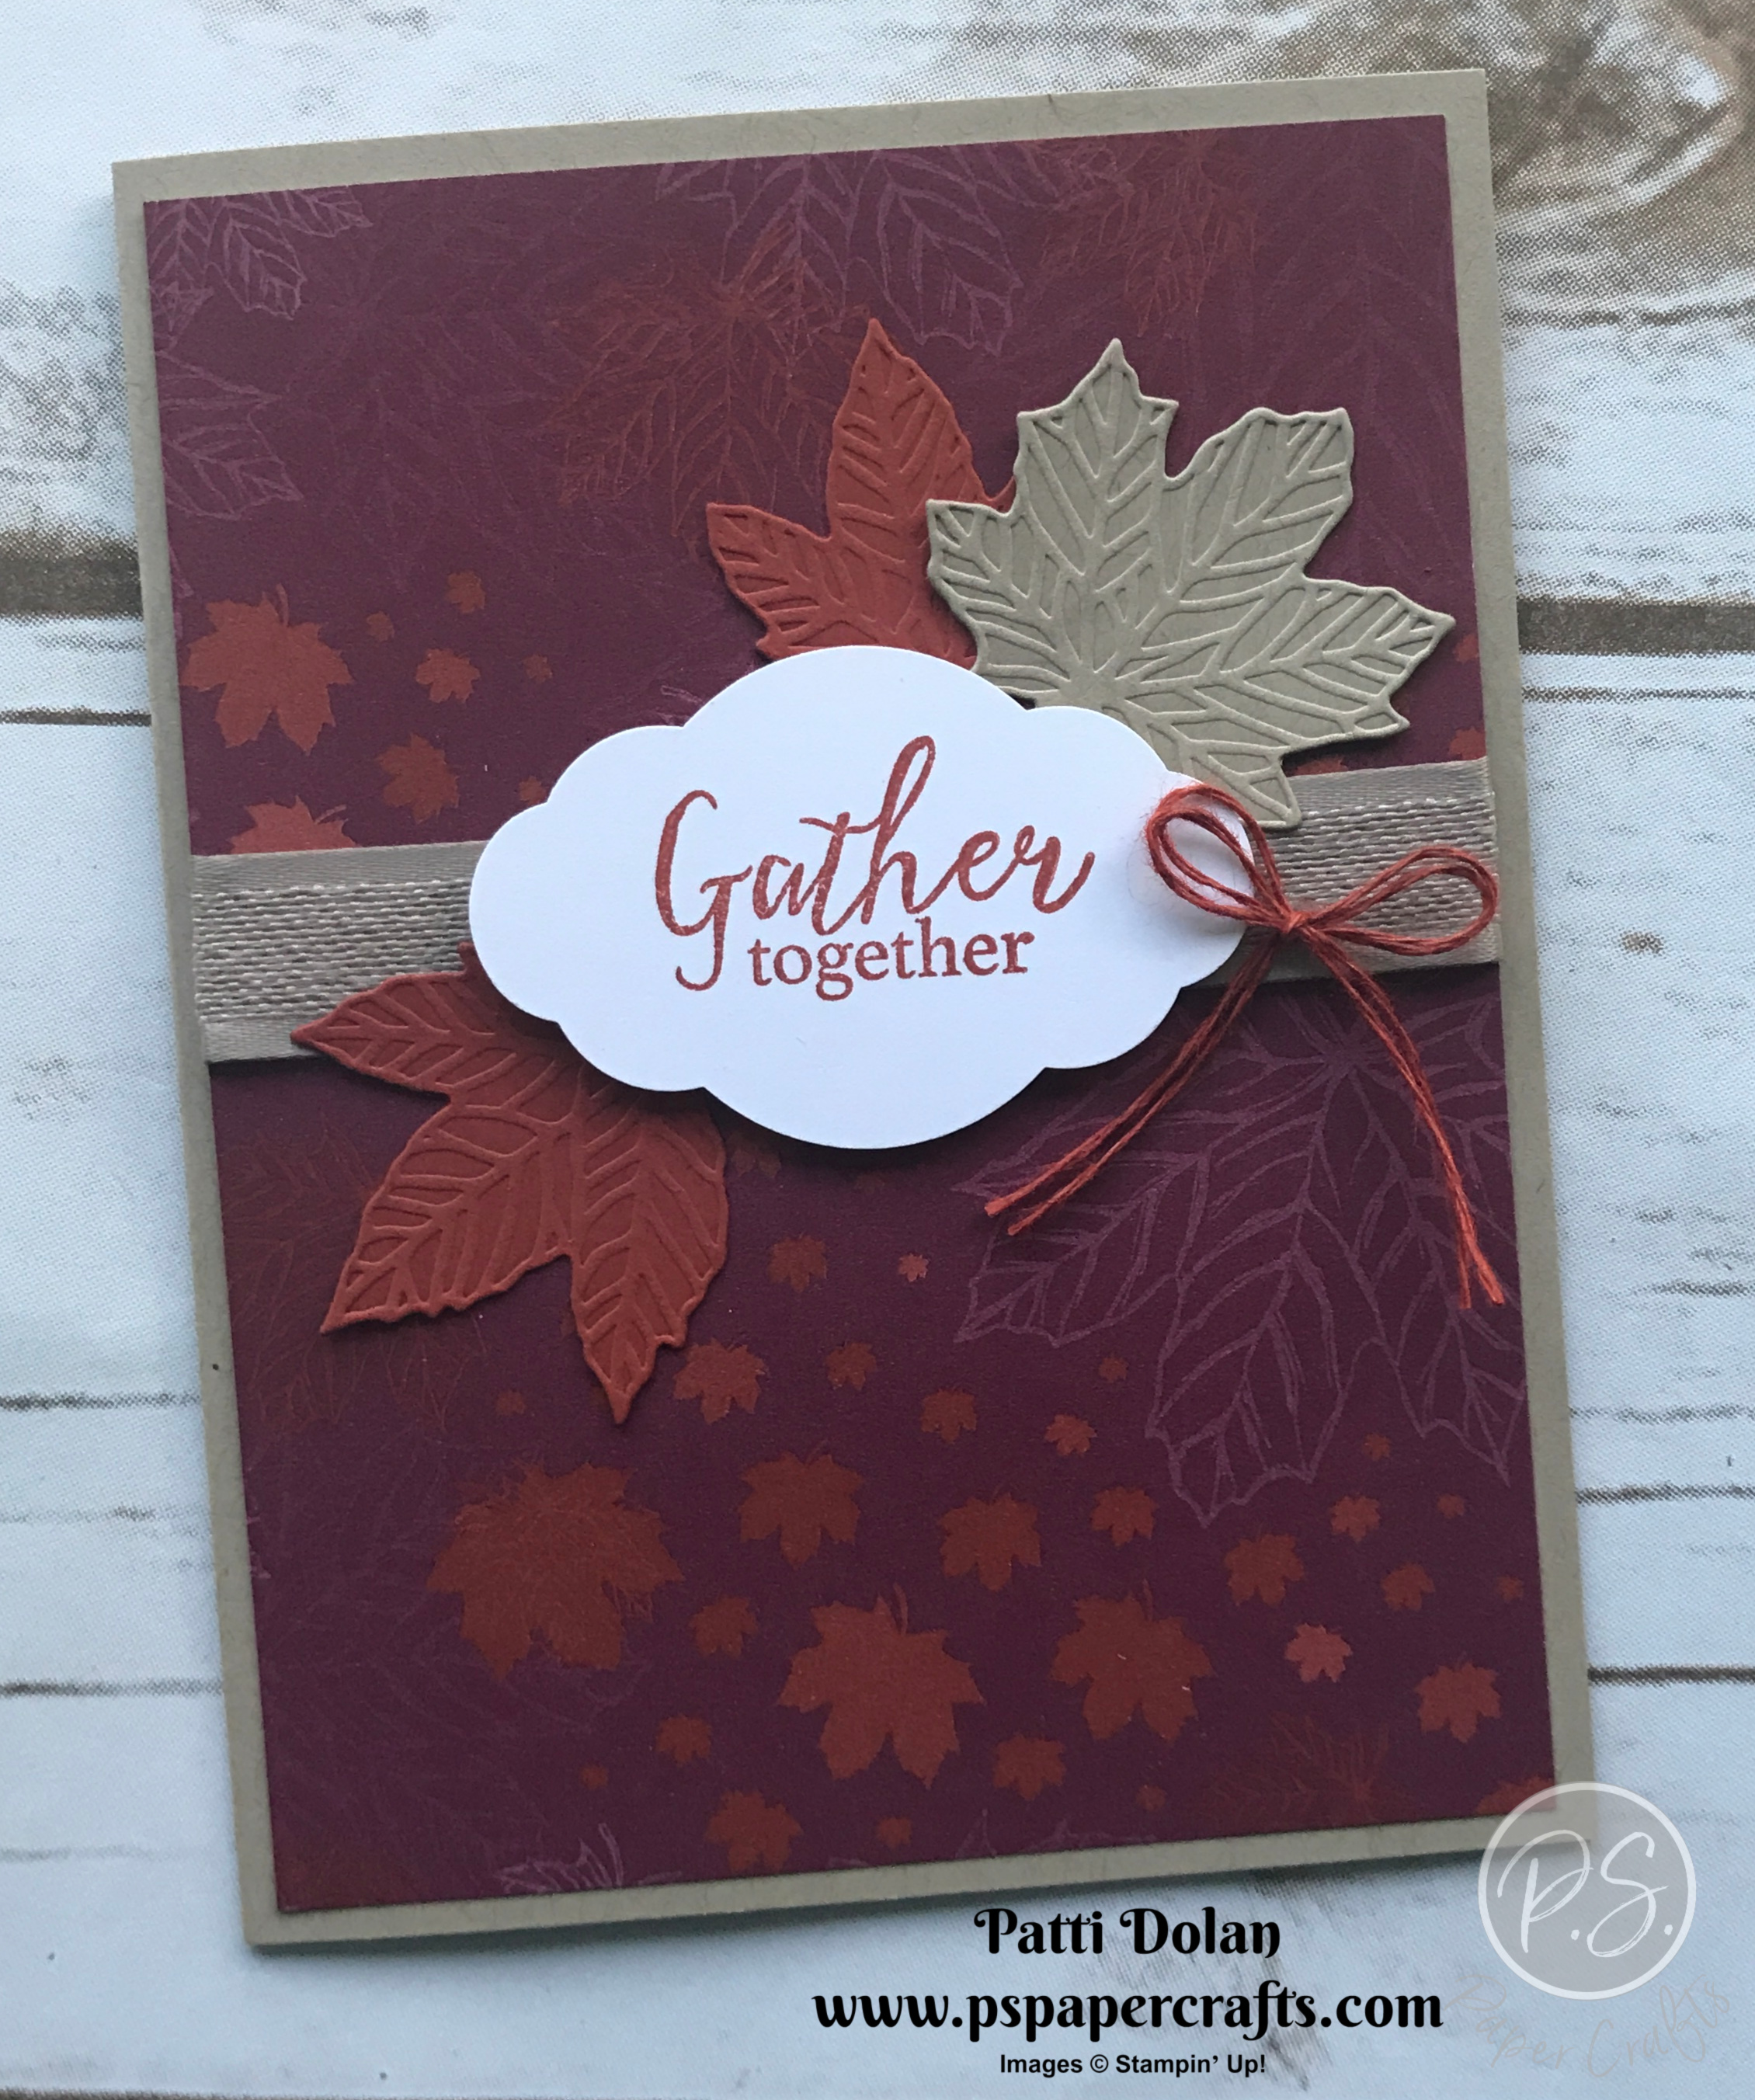 Gather Together Autumn Leaves4.jpg